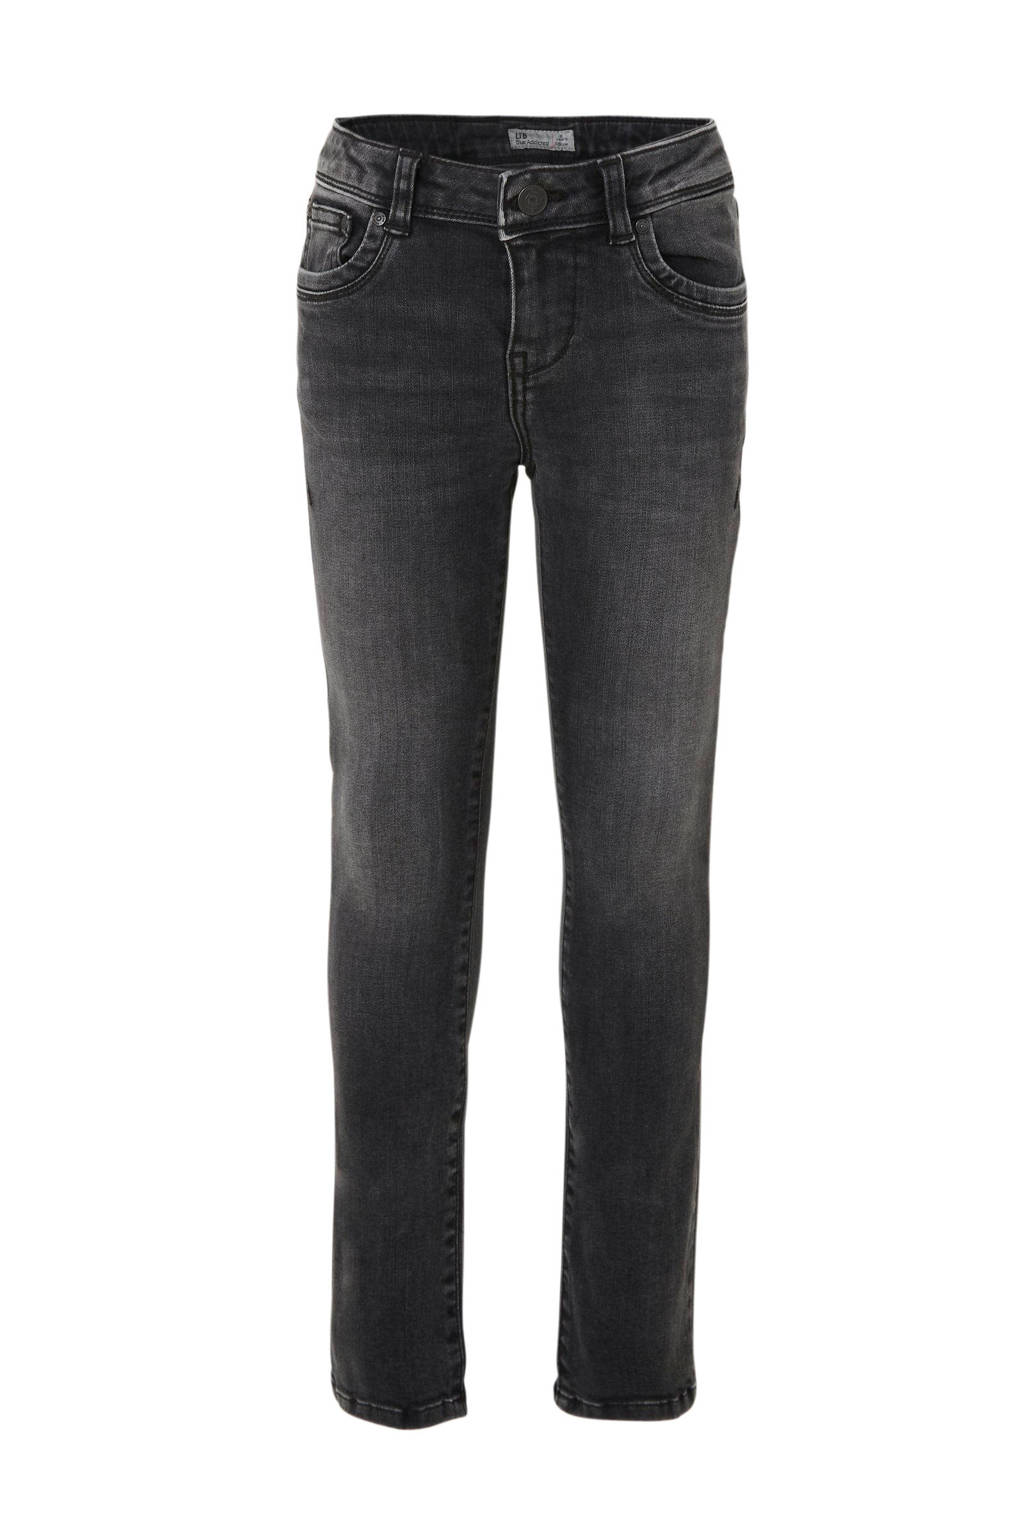 LTB flared fit jeans Valerie donkerblauw, Donkerblauw (Black Vivid wash)